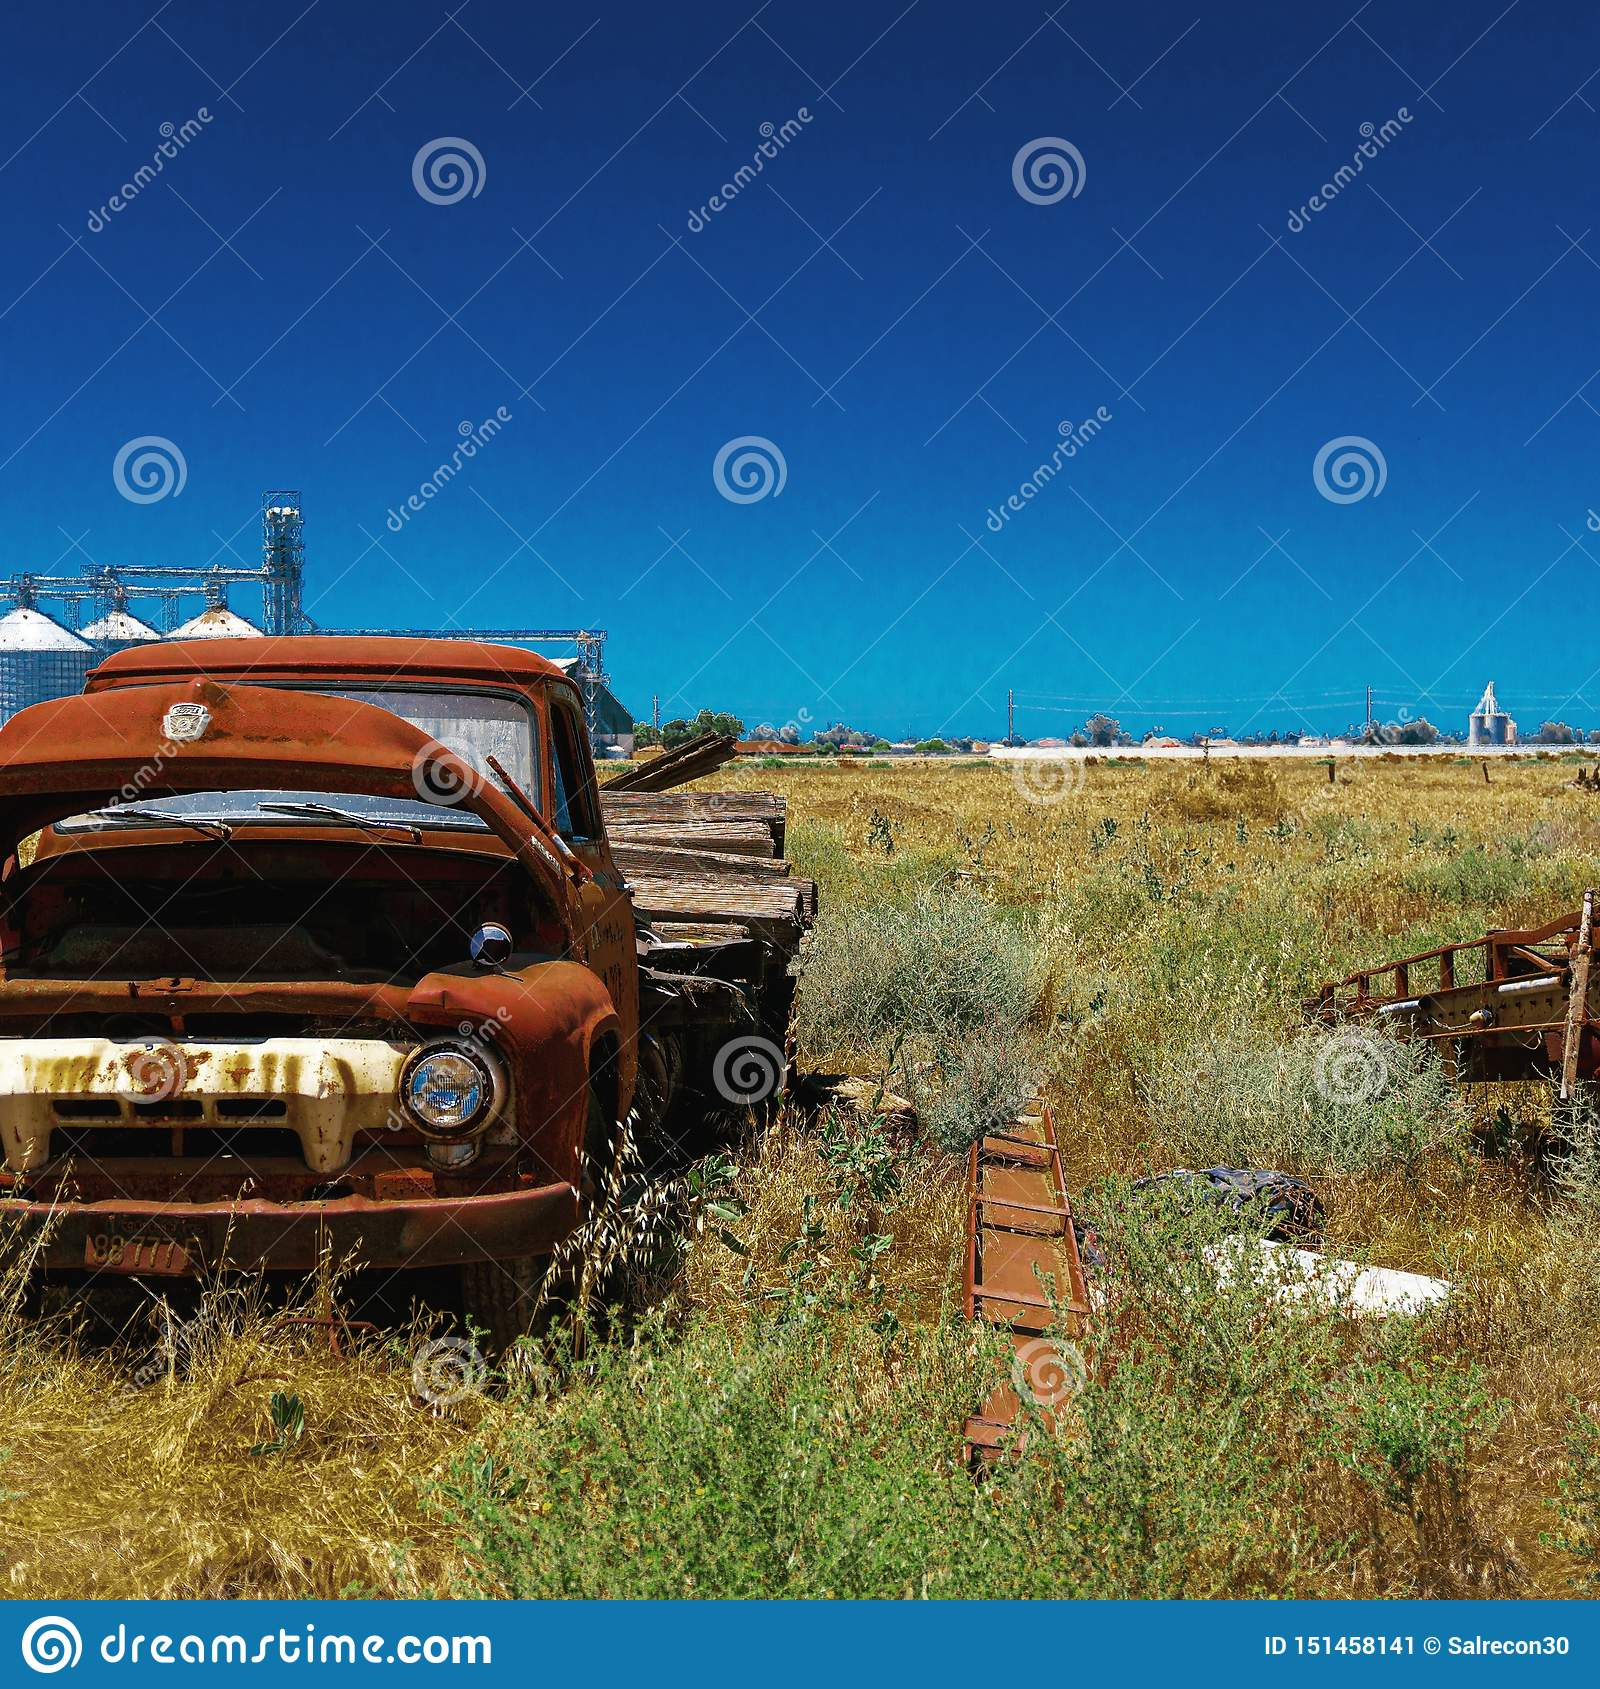 Abandoned old ford truck on farm by a factory